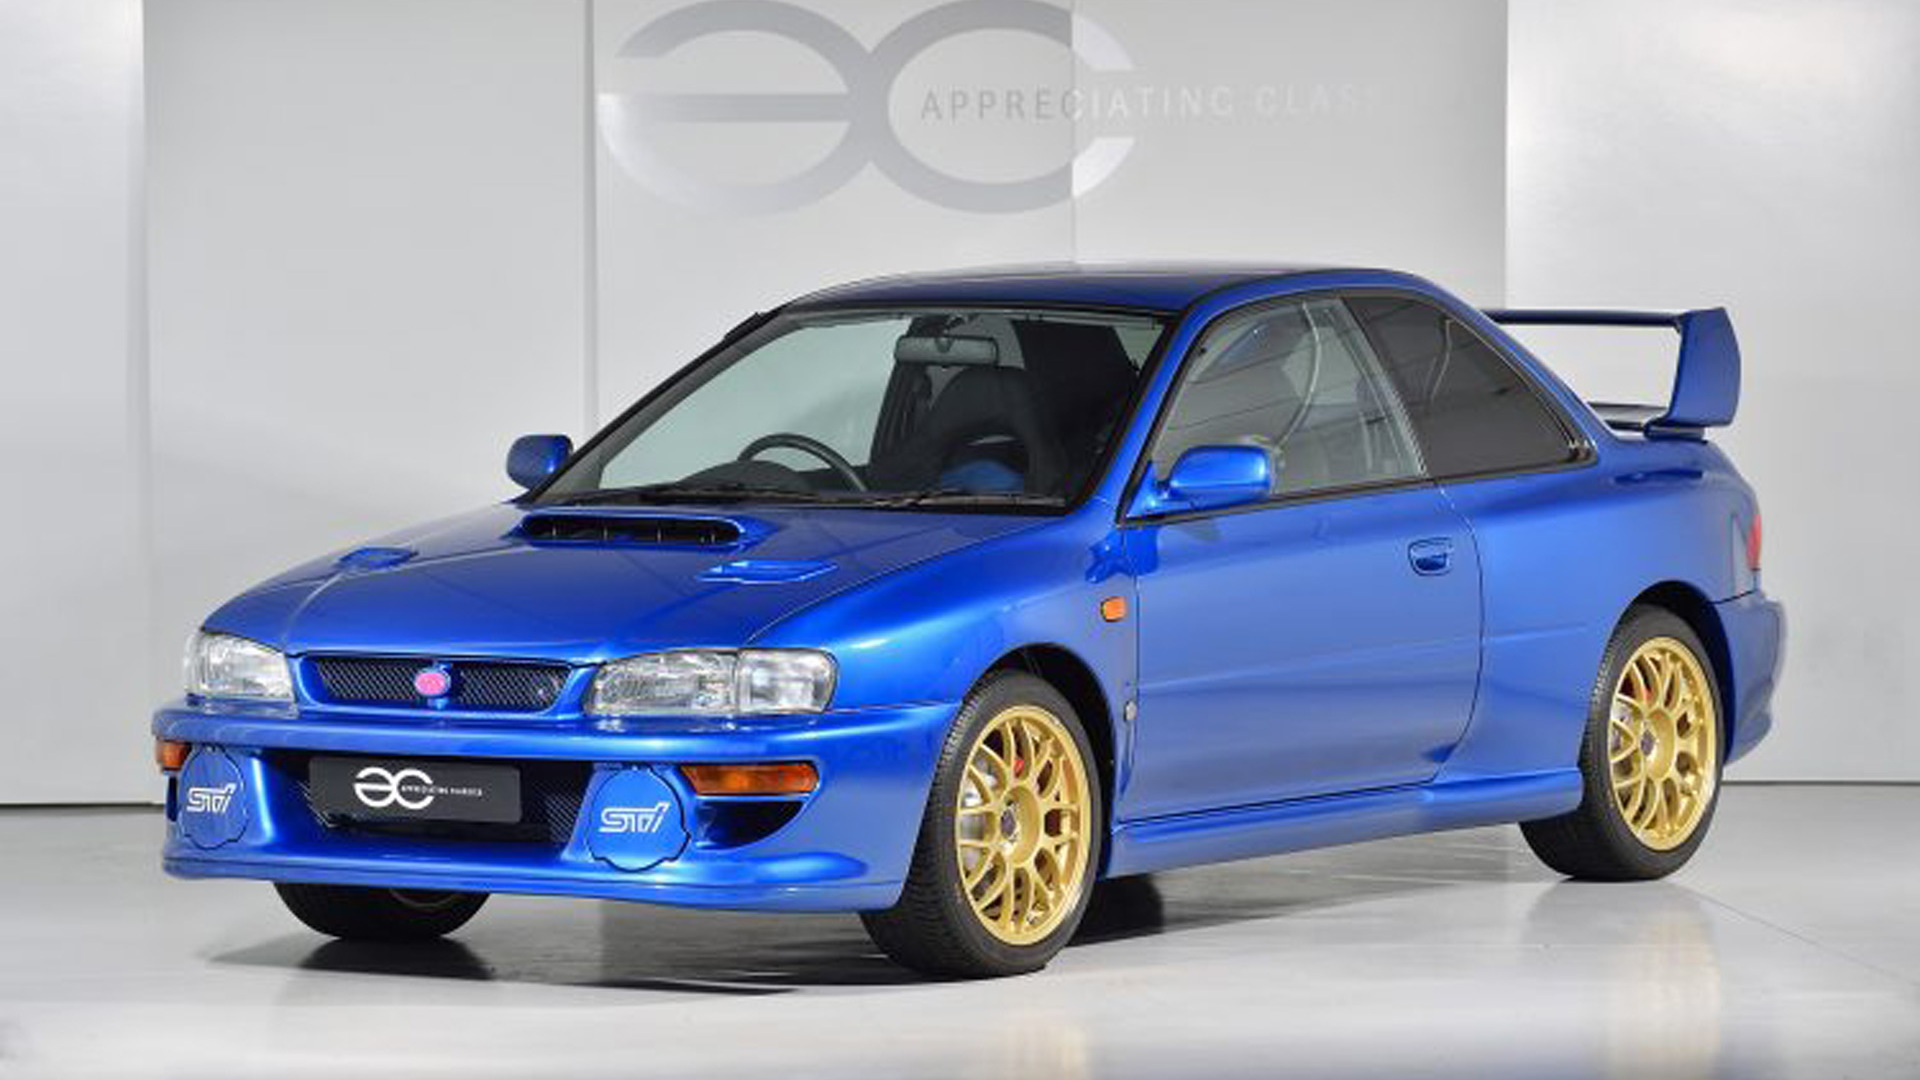 1998 Subaru Impreza 22B STI - Photo credit: Appreciating Classics